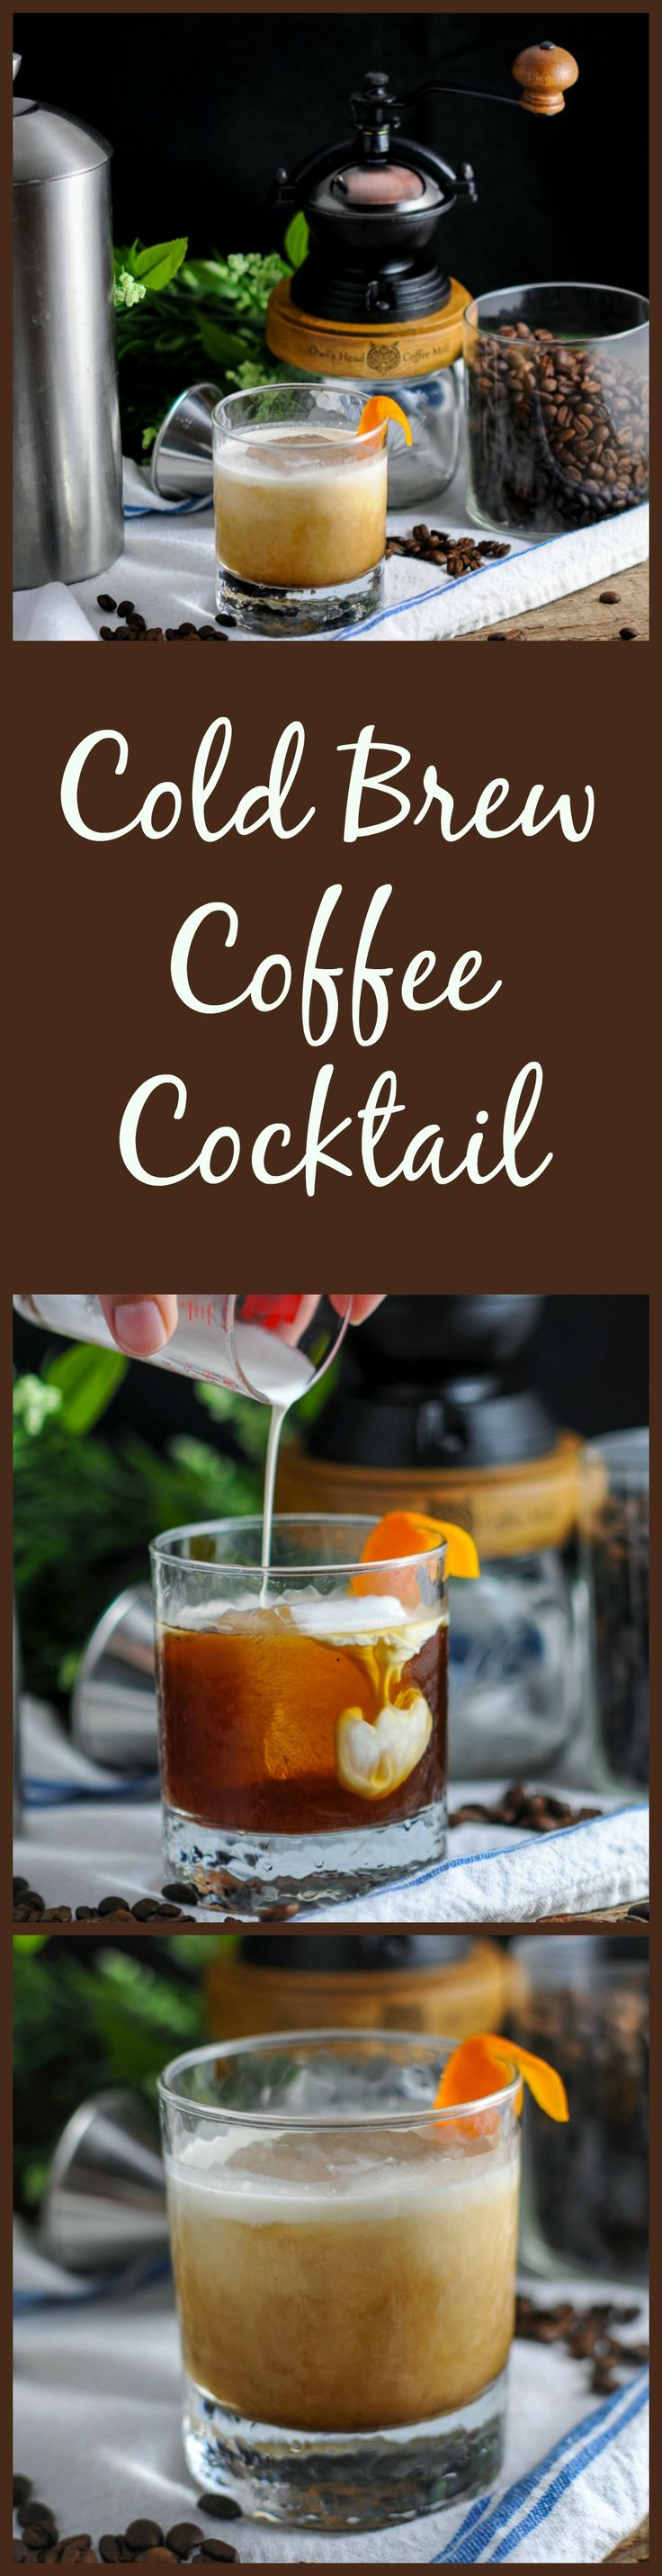 Cold Brew Coffee Cocktail - cold brew coffee, bourbon, triple sec, cream, maple syrup #ad #sponsored